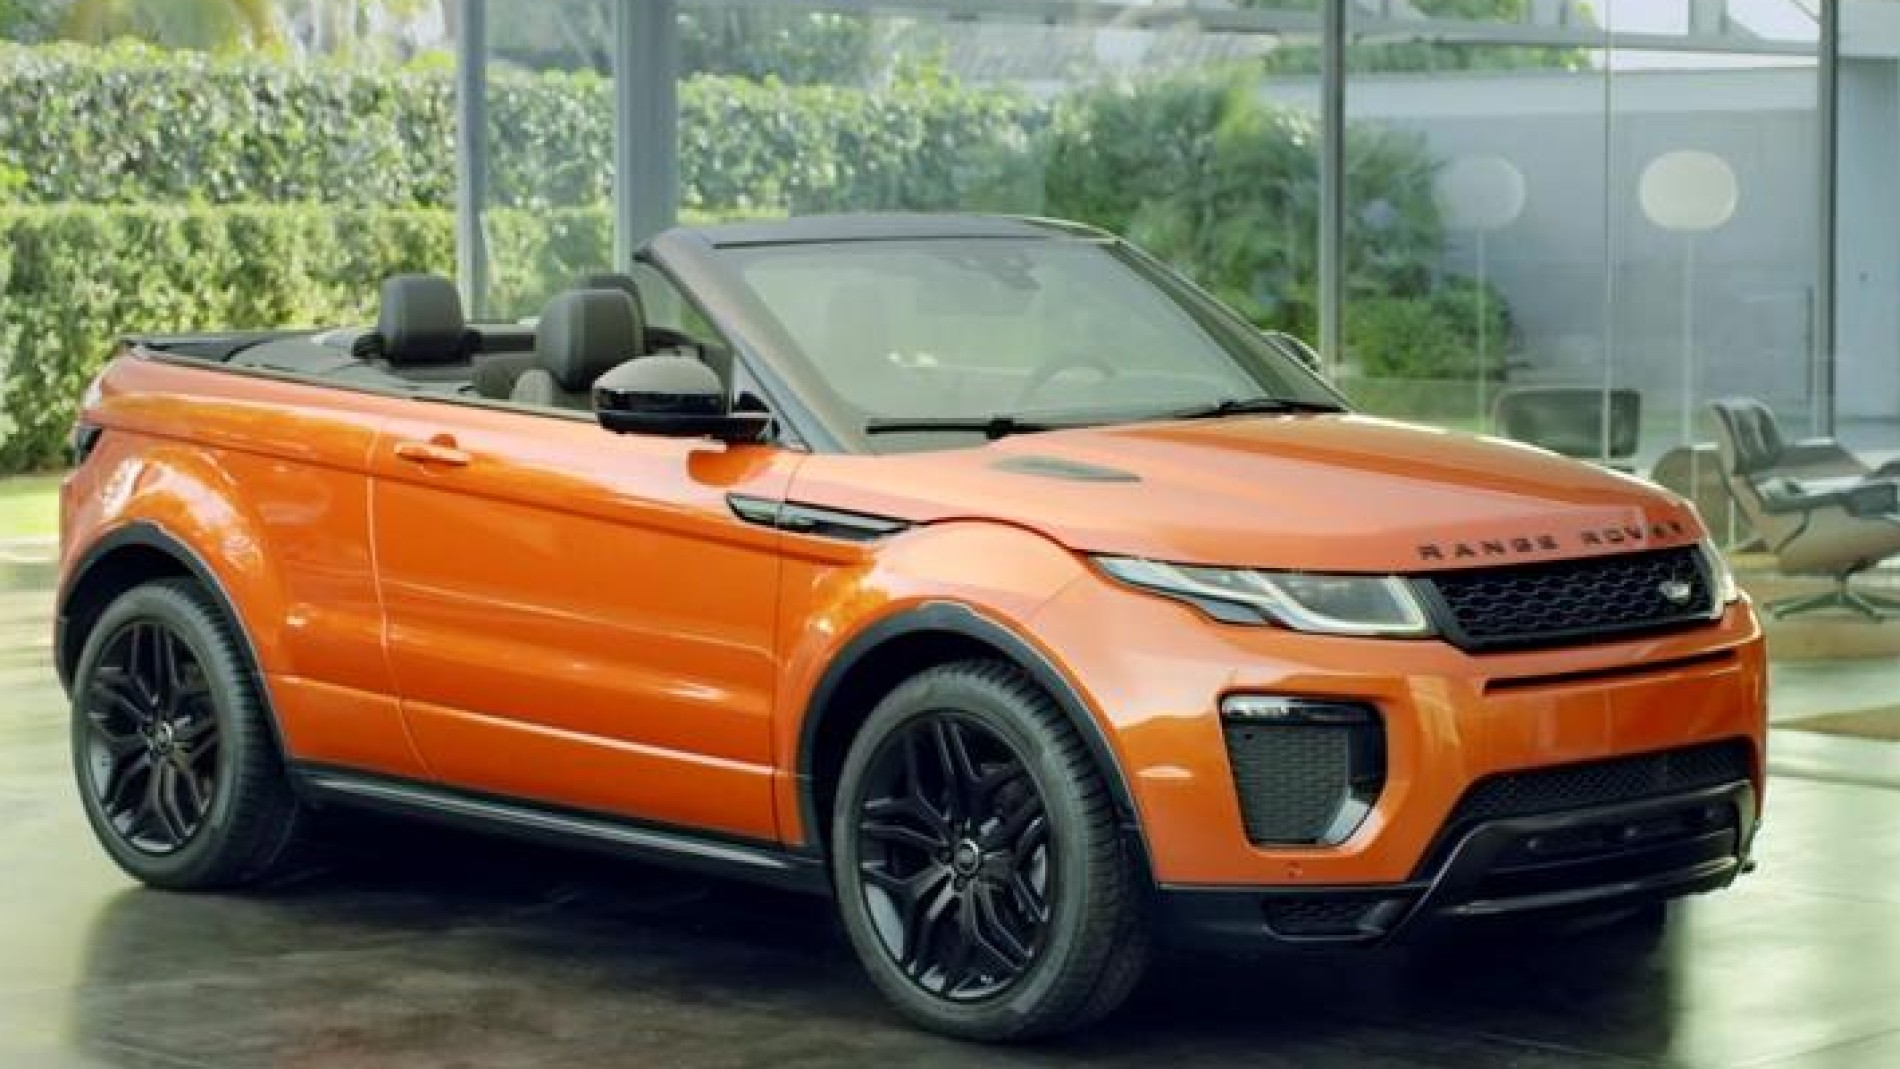 rover range evoque cabriolet. Black Bedroom Furniture Sets. Home Design Ideas